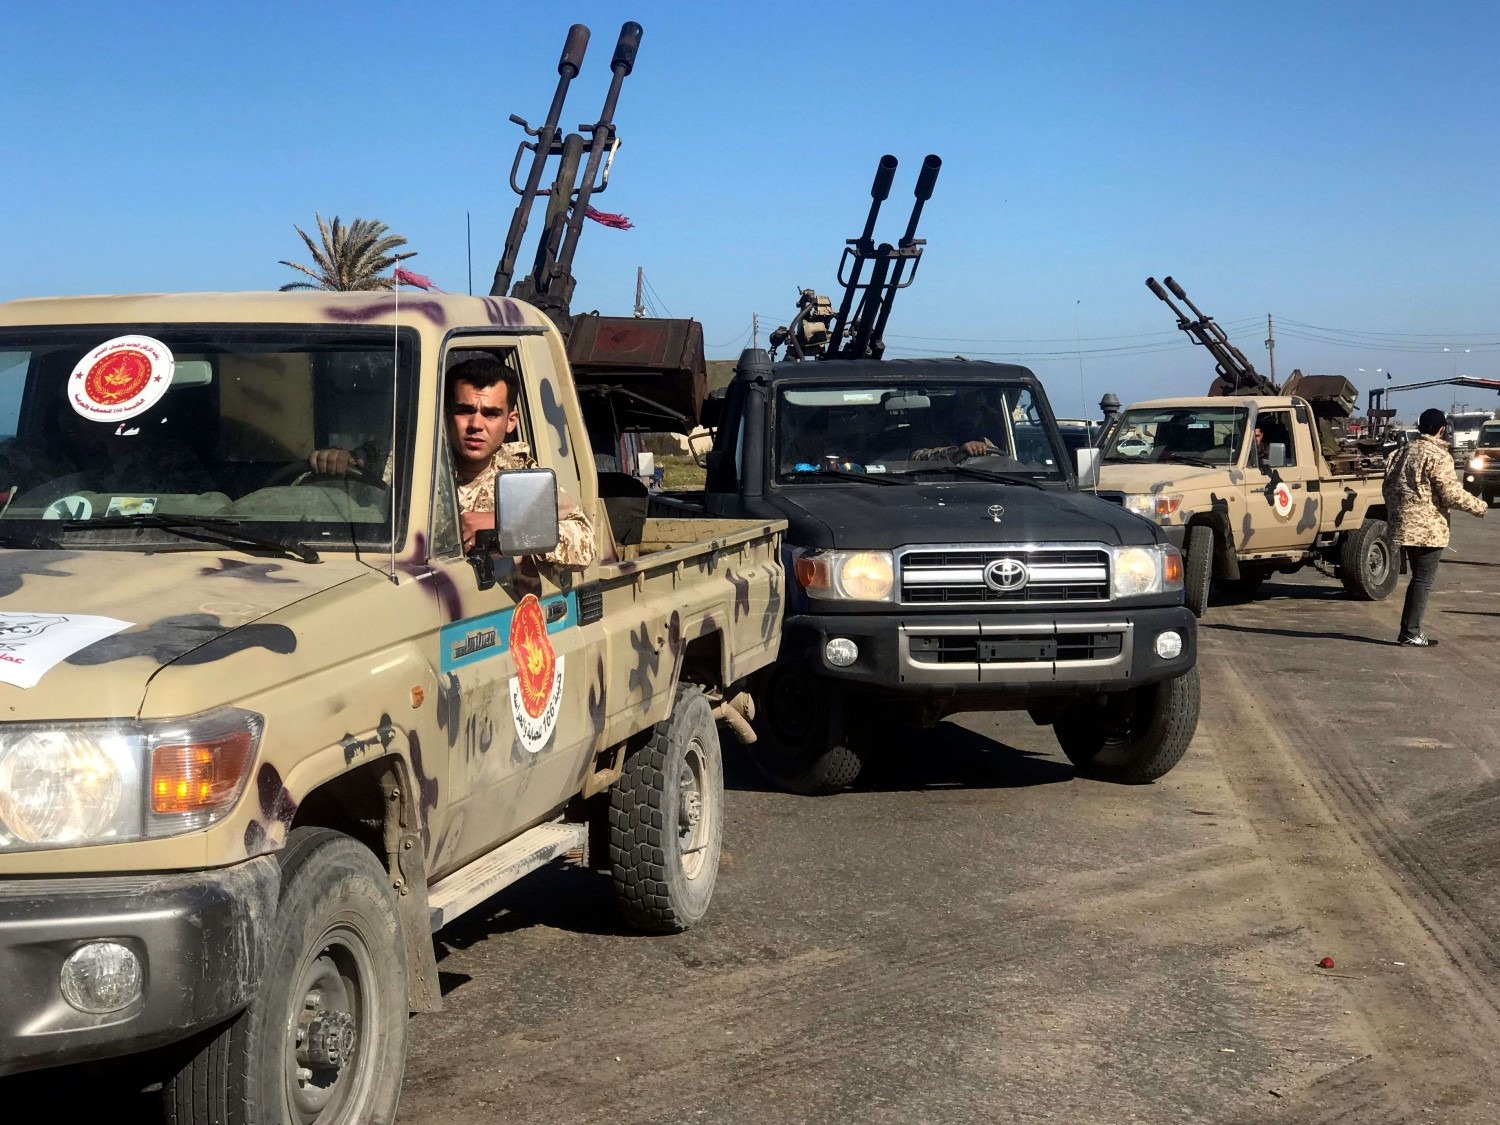 Forces loyal to Libya's UN-backed unity government arrive in Tajura, a coastal suburb of the Libyan capital Tripoli, on April 6, 2019. (AFP)